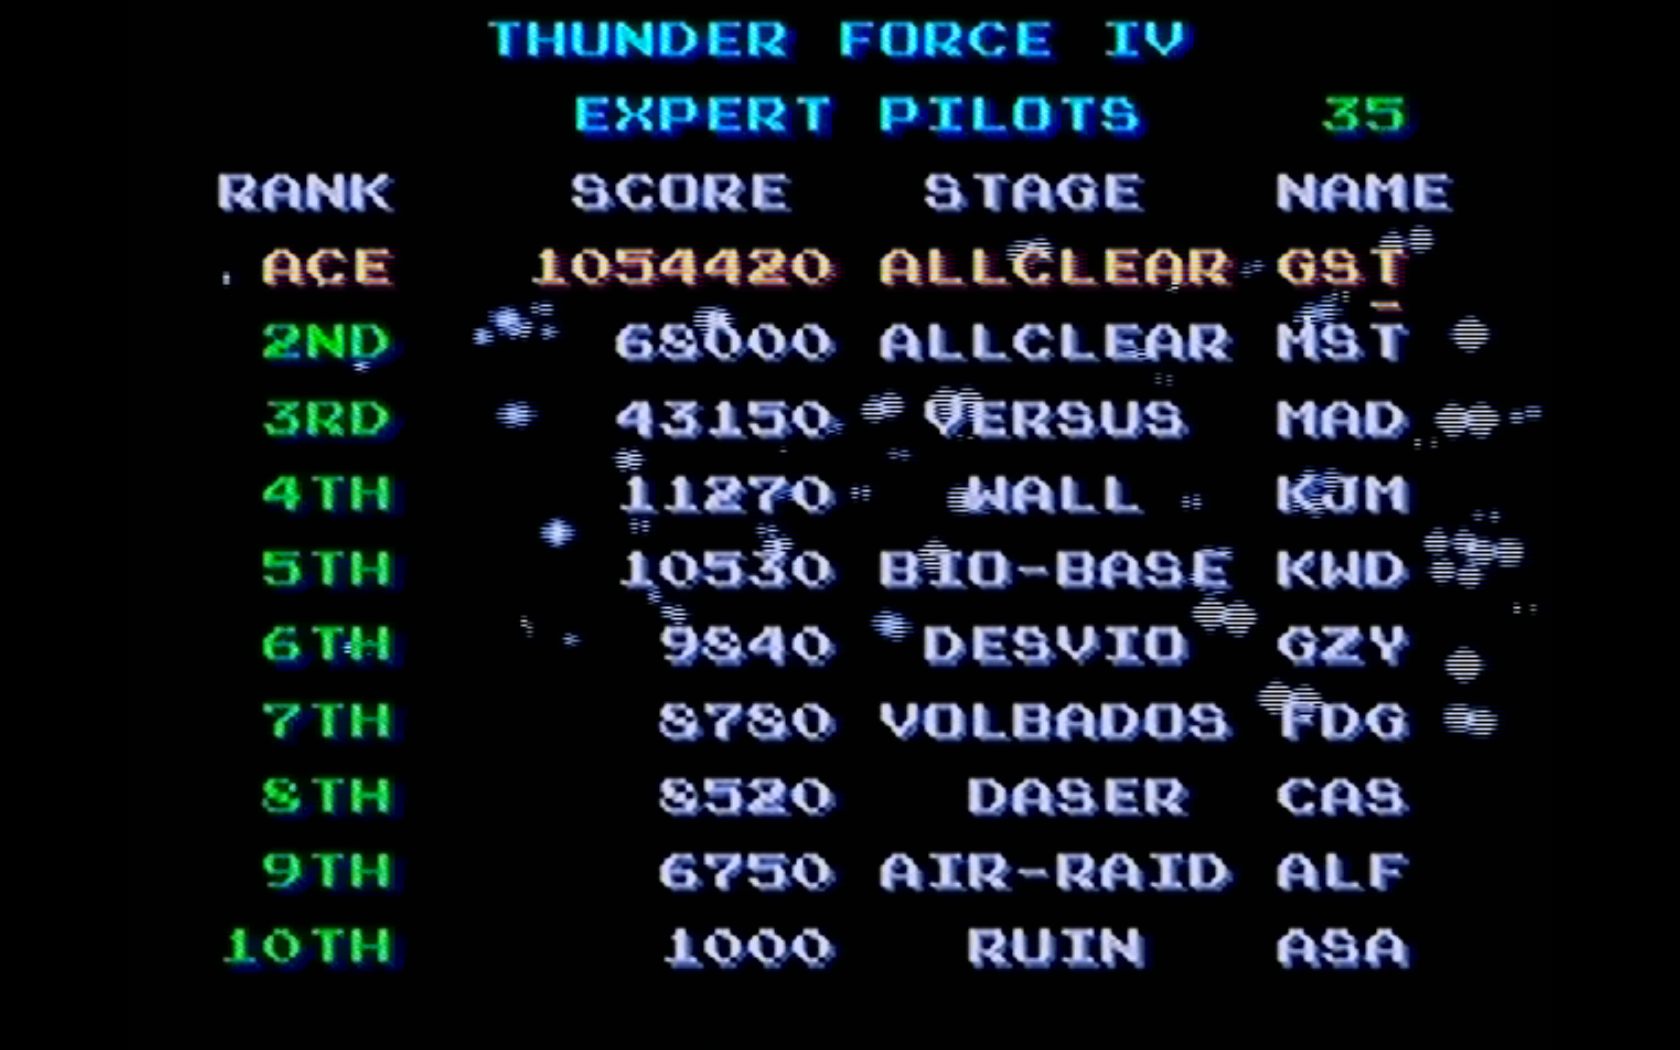 Thunder Force IV [Normal] 1,054,420 points